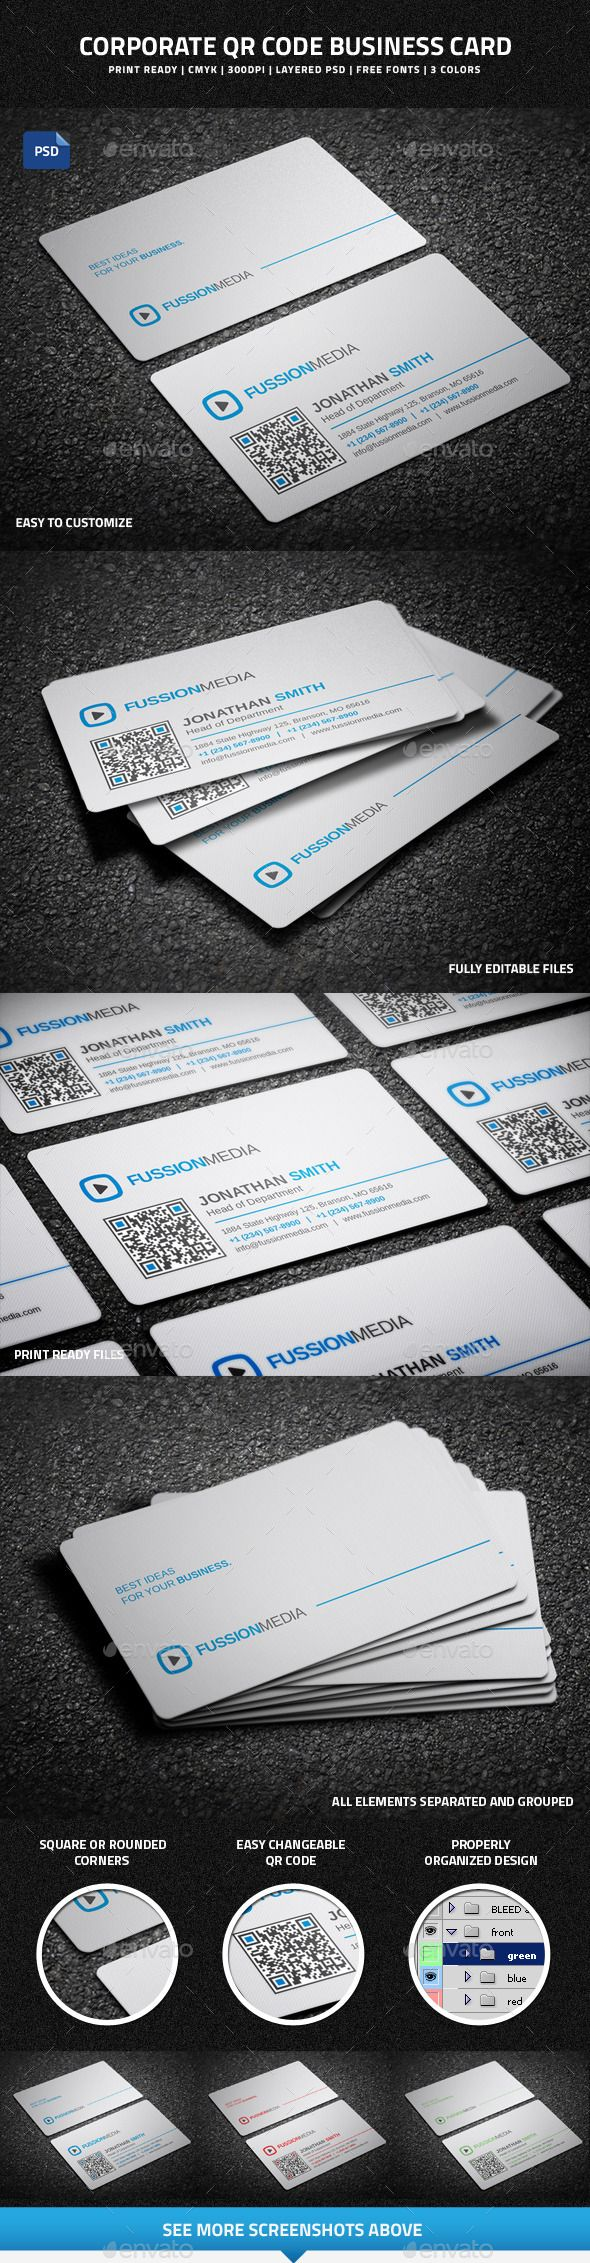 Latex Business Card Qr Code Images - Card Design And Card Template